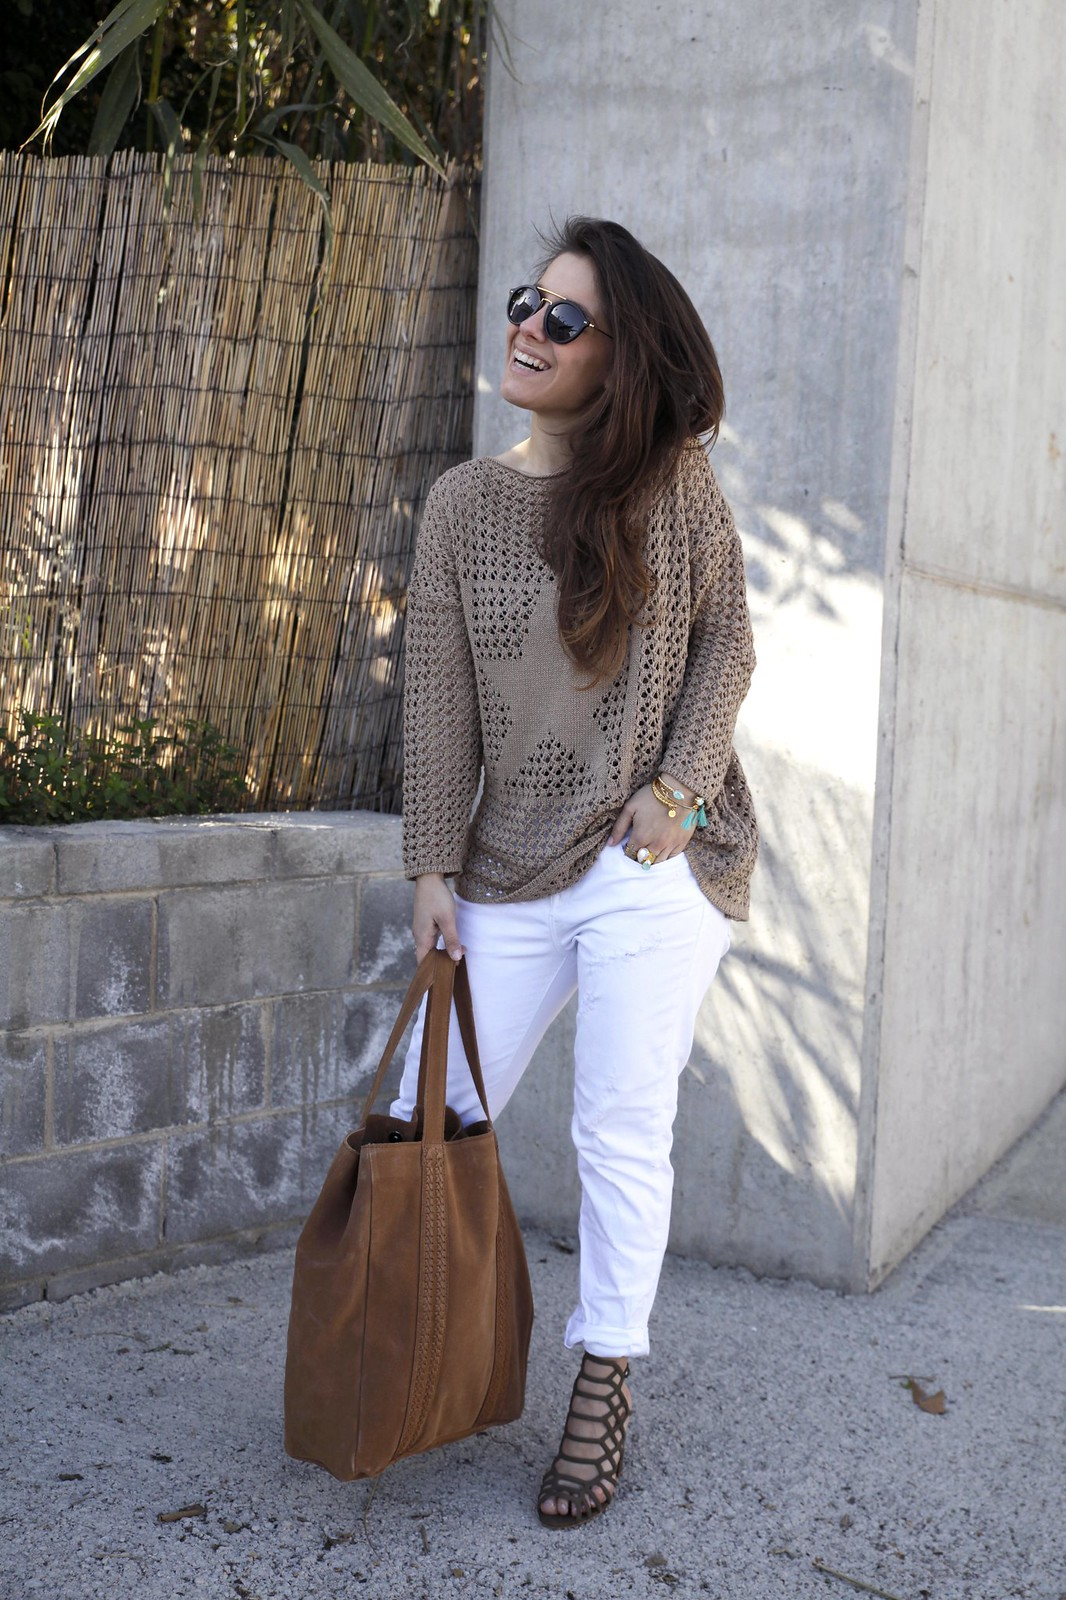 015_SPRING_NEUTRAL_OUTFIT_STREET_STYLE_FASHION_BLOGGER_INFLUENCER_BARCELONA_THEGUESTGIRL